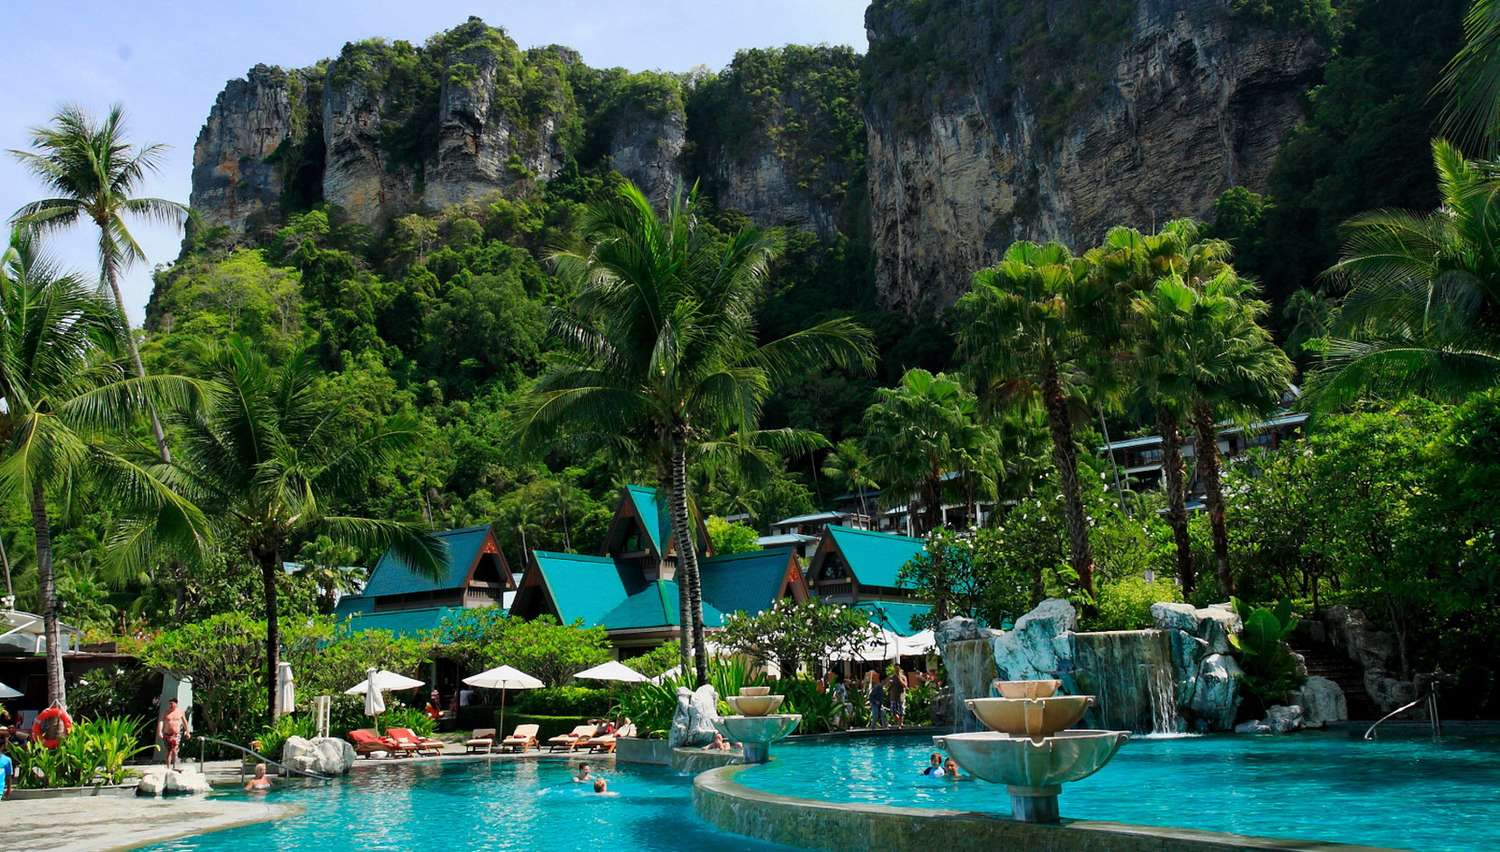 Centara Grand Beach Resort Villas Krabi Hotel Phuket